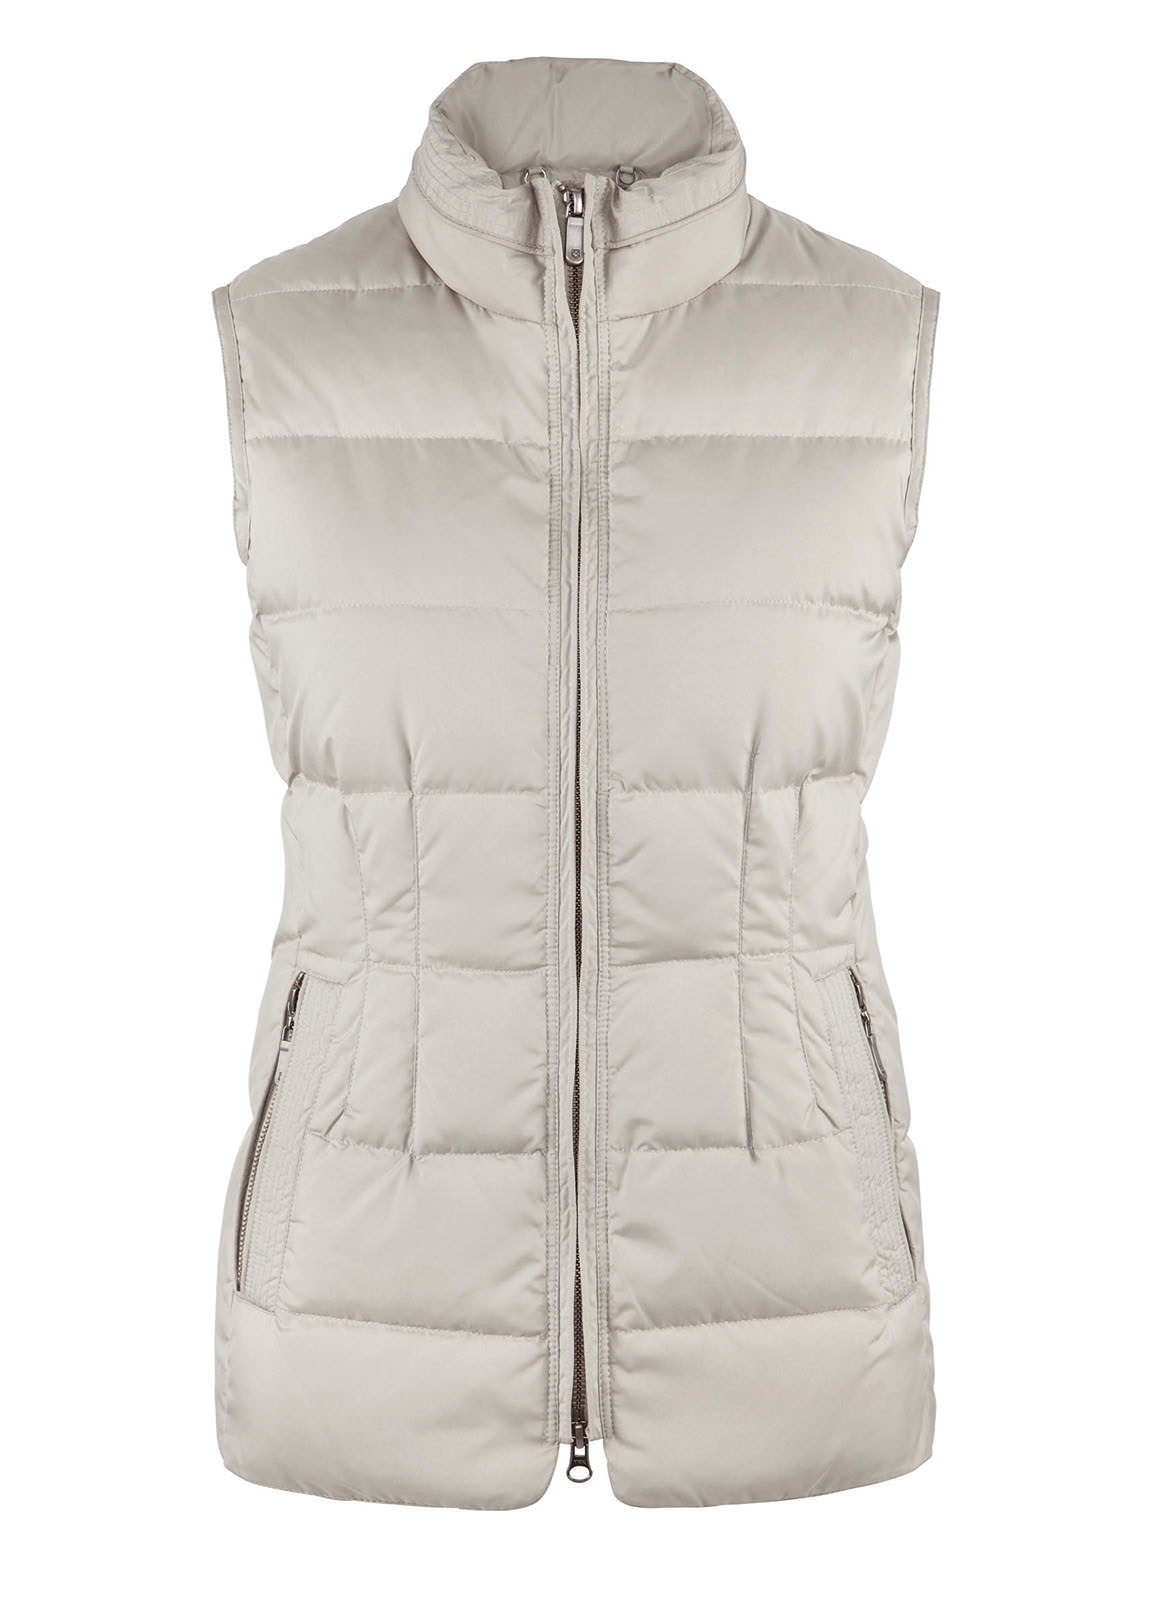 Dubarry_Spiddal Quilted Gilet - Shale_Image_2